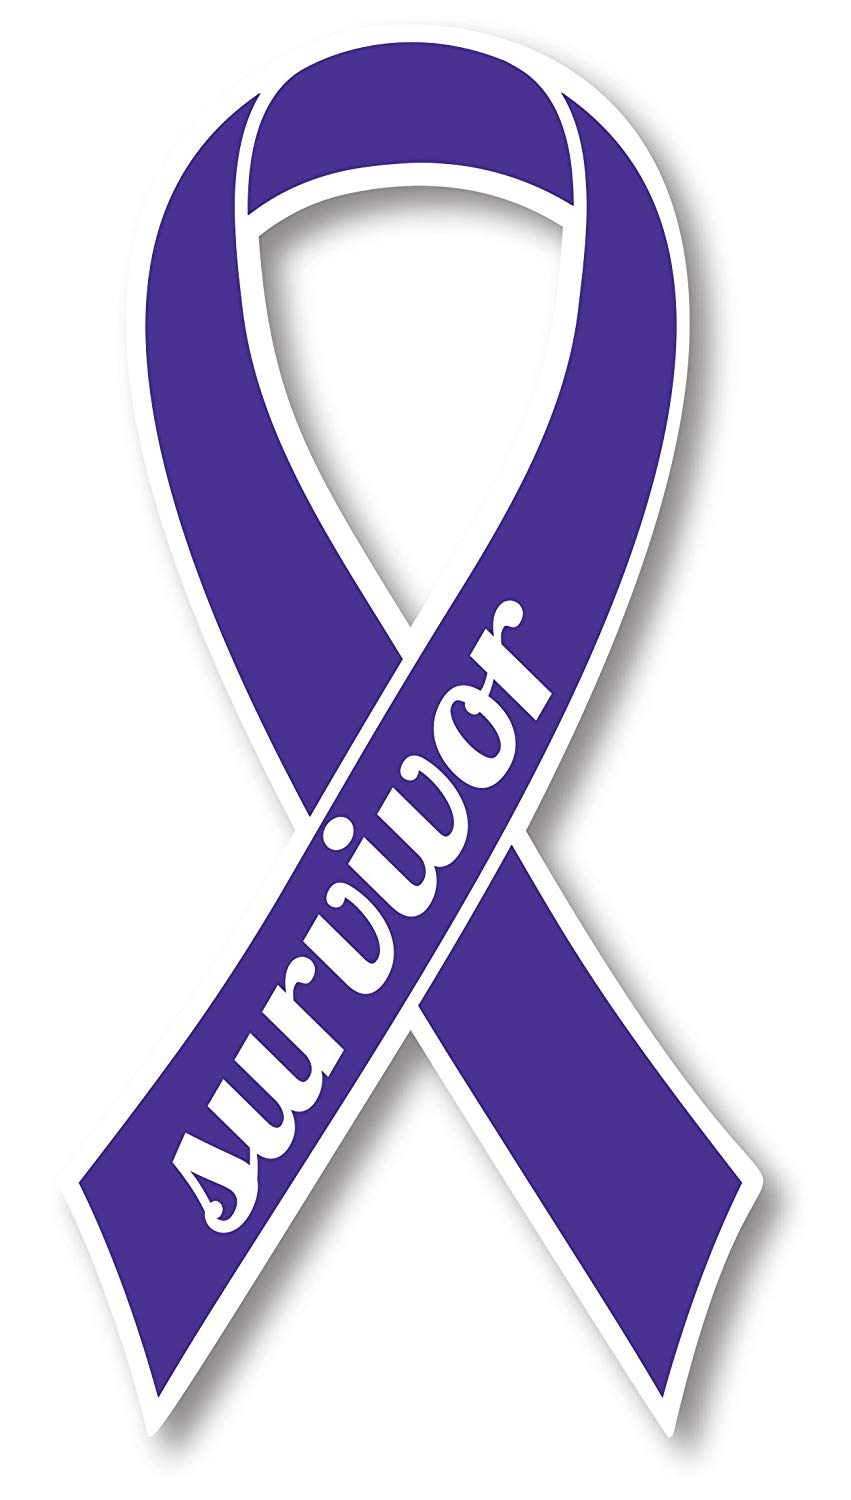 Testicular cancer awareness ribbon clipart clip free download Violet Non Hodgkins Lymphoma and Testicular Cancer Suvivor Ribbon Car  Magnet Decal Heavy Duty Waterproof clip free download